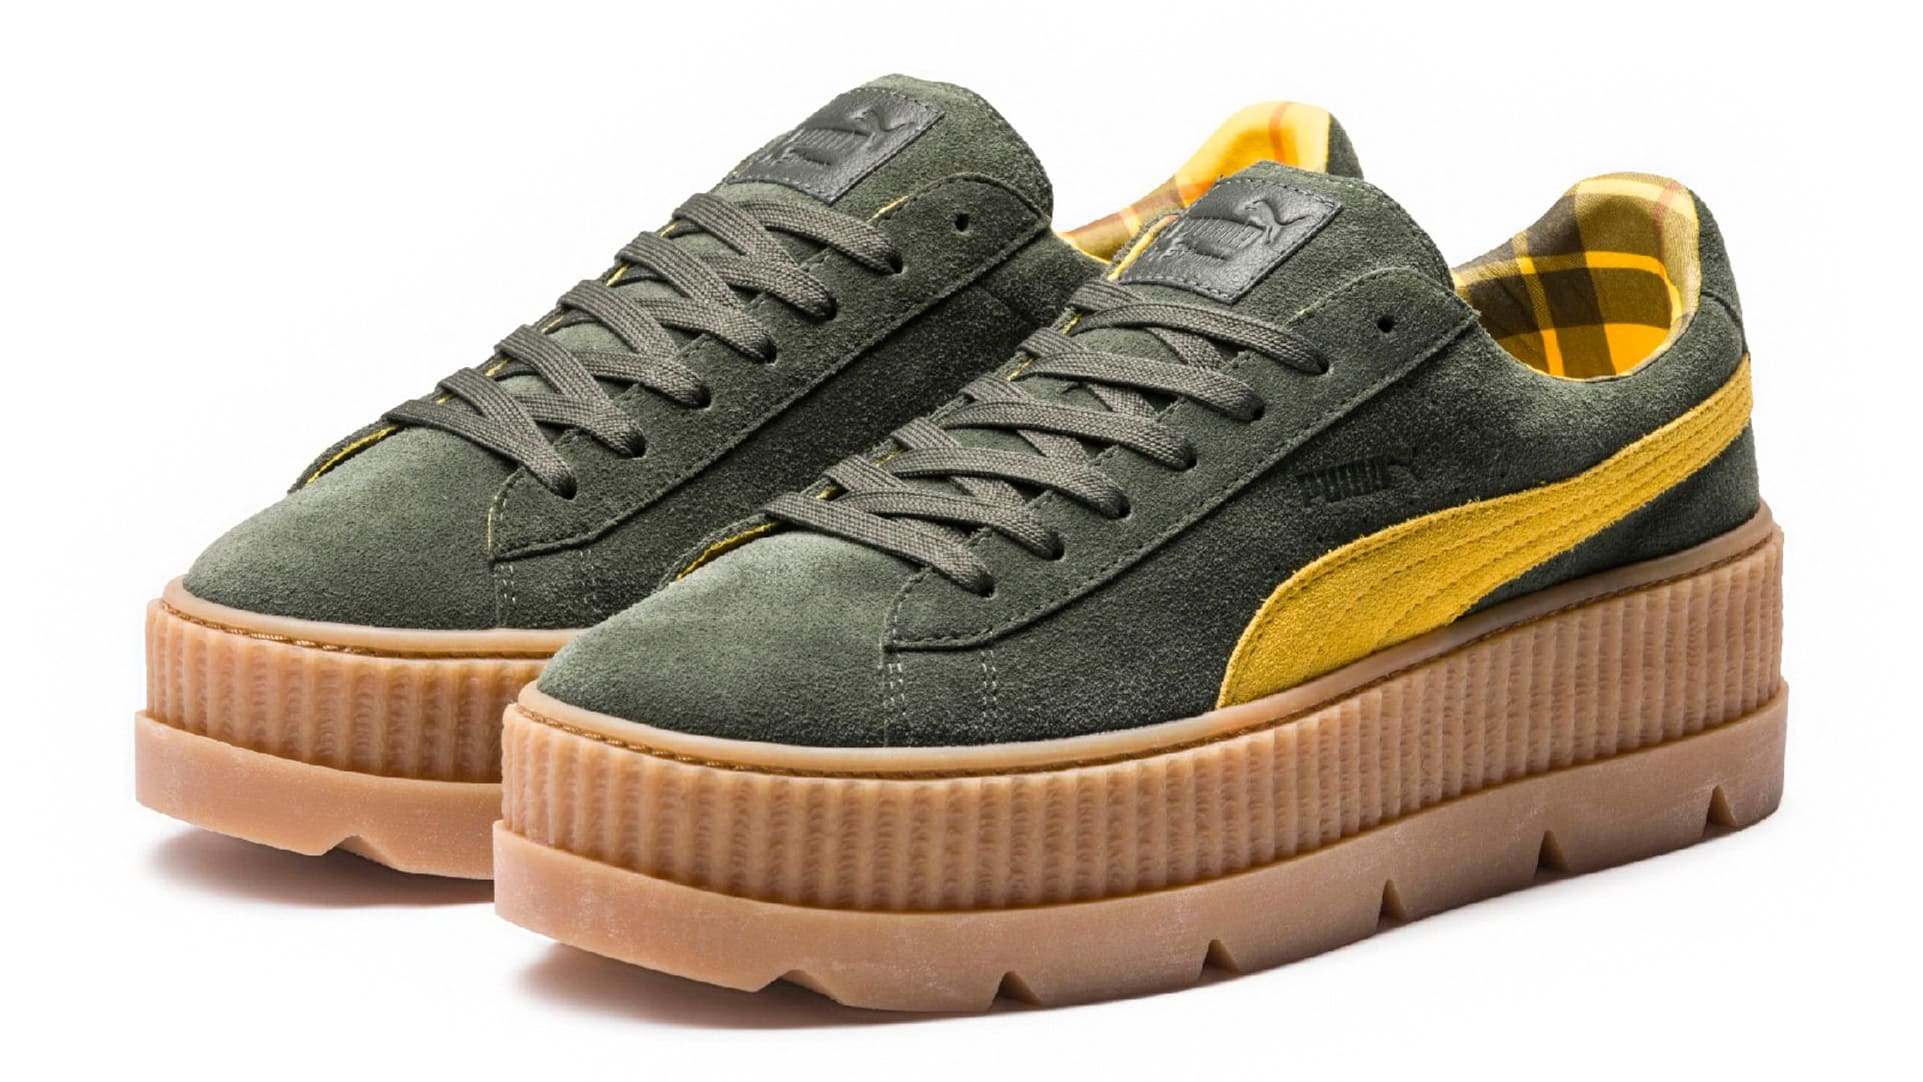 Fenty by Rihanna x Puma Cleated Creeper Suede